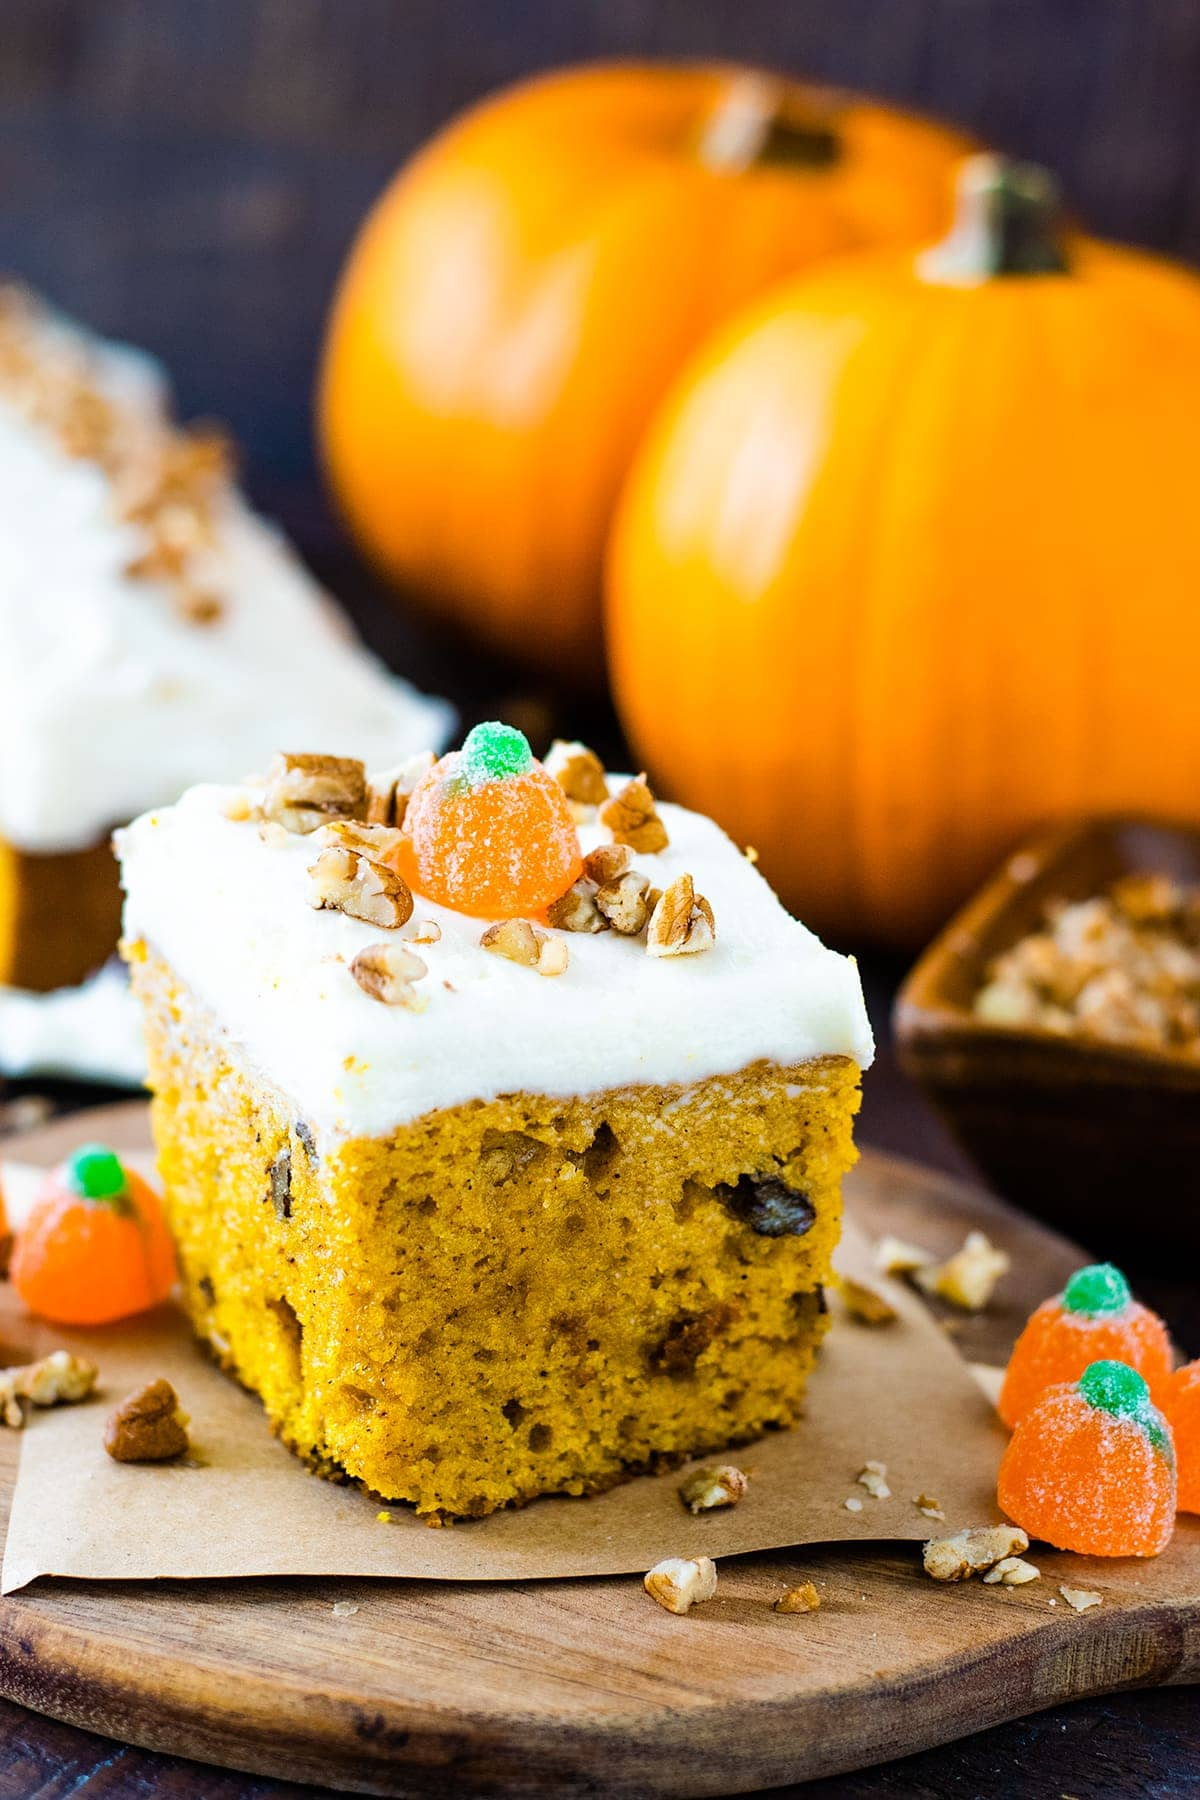 Slice of pumpkin spice cake with orange pie pumpkins displayed in the background.